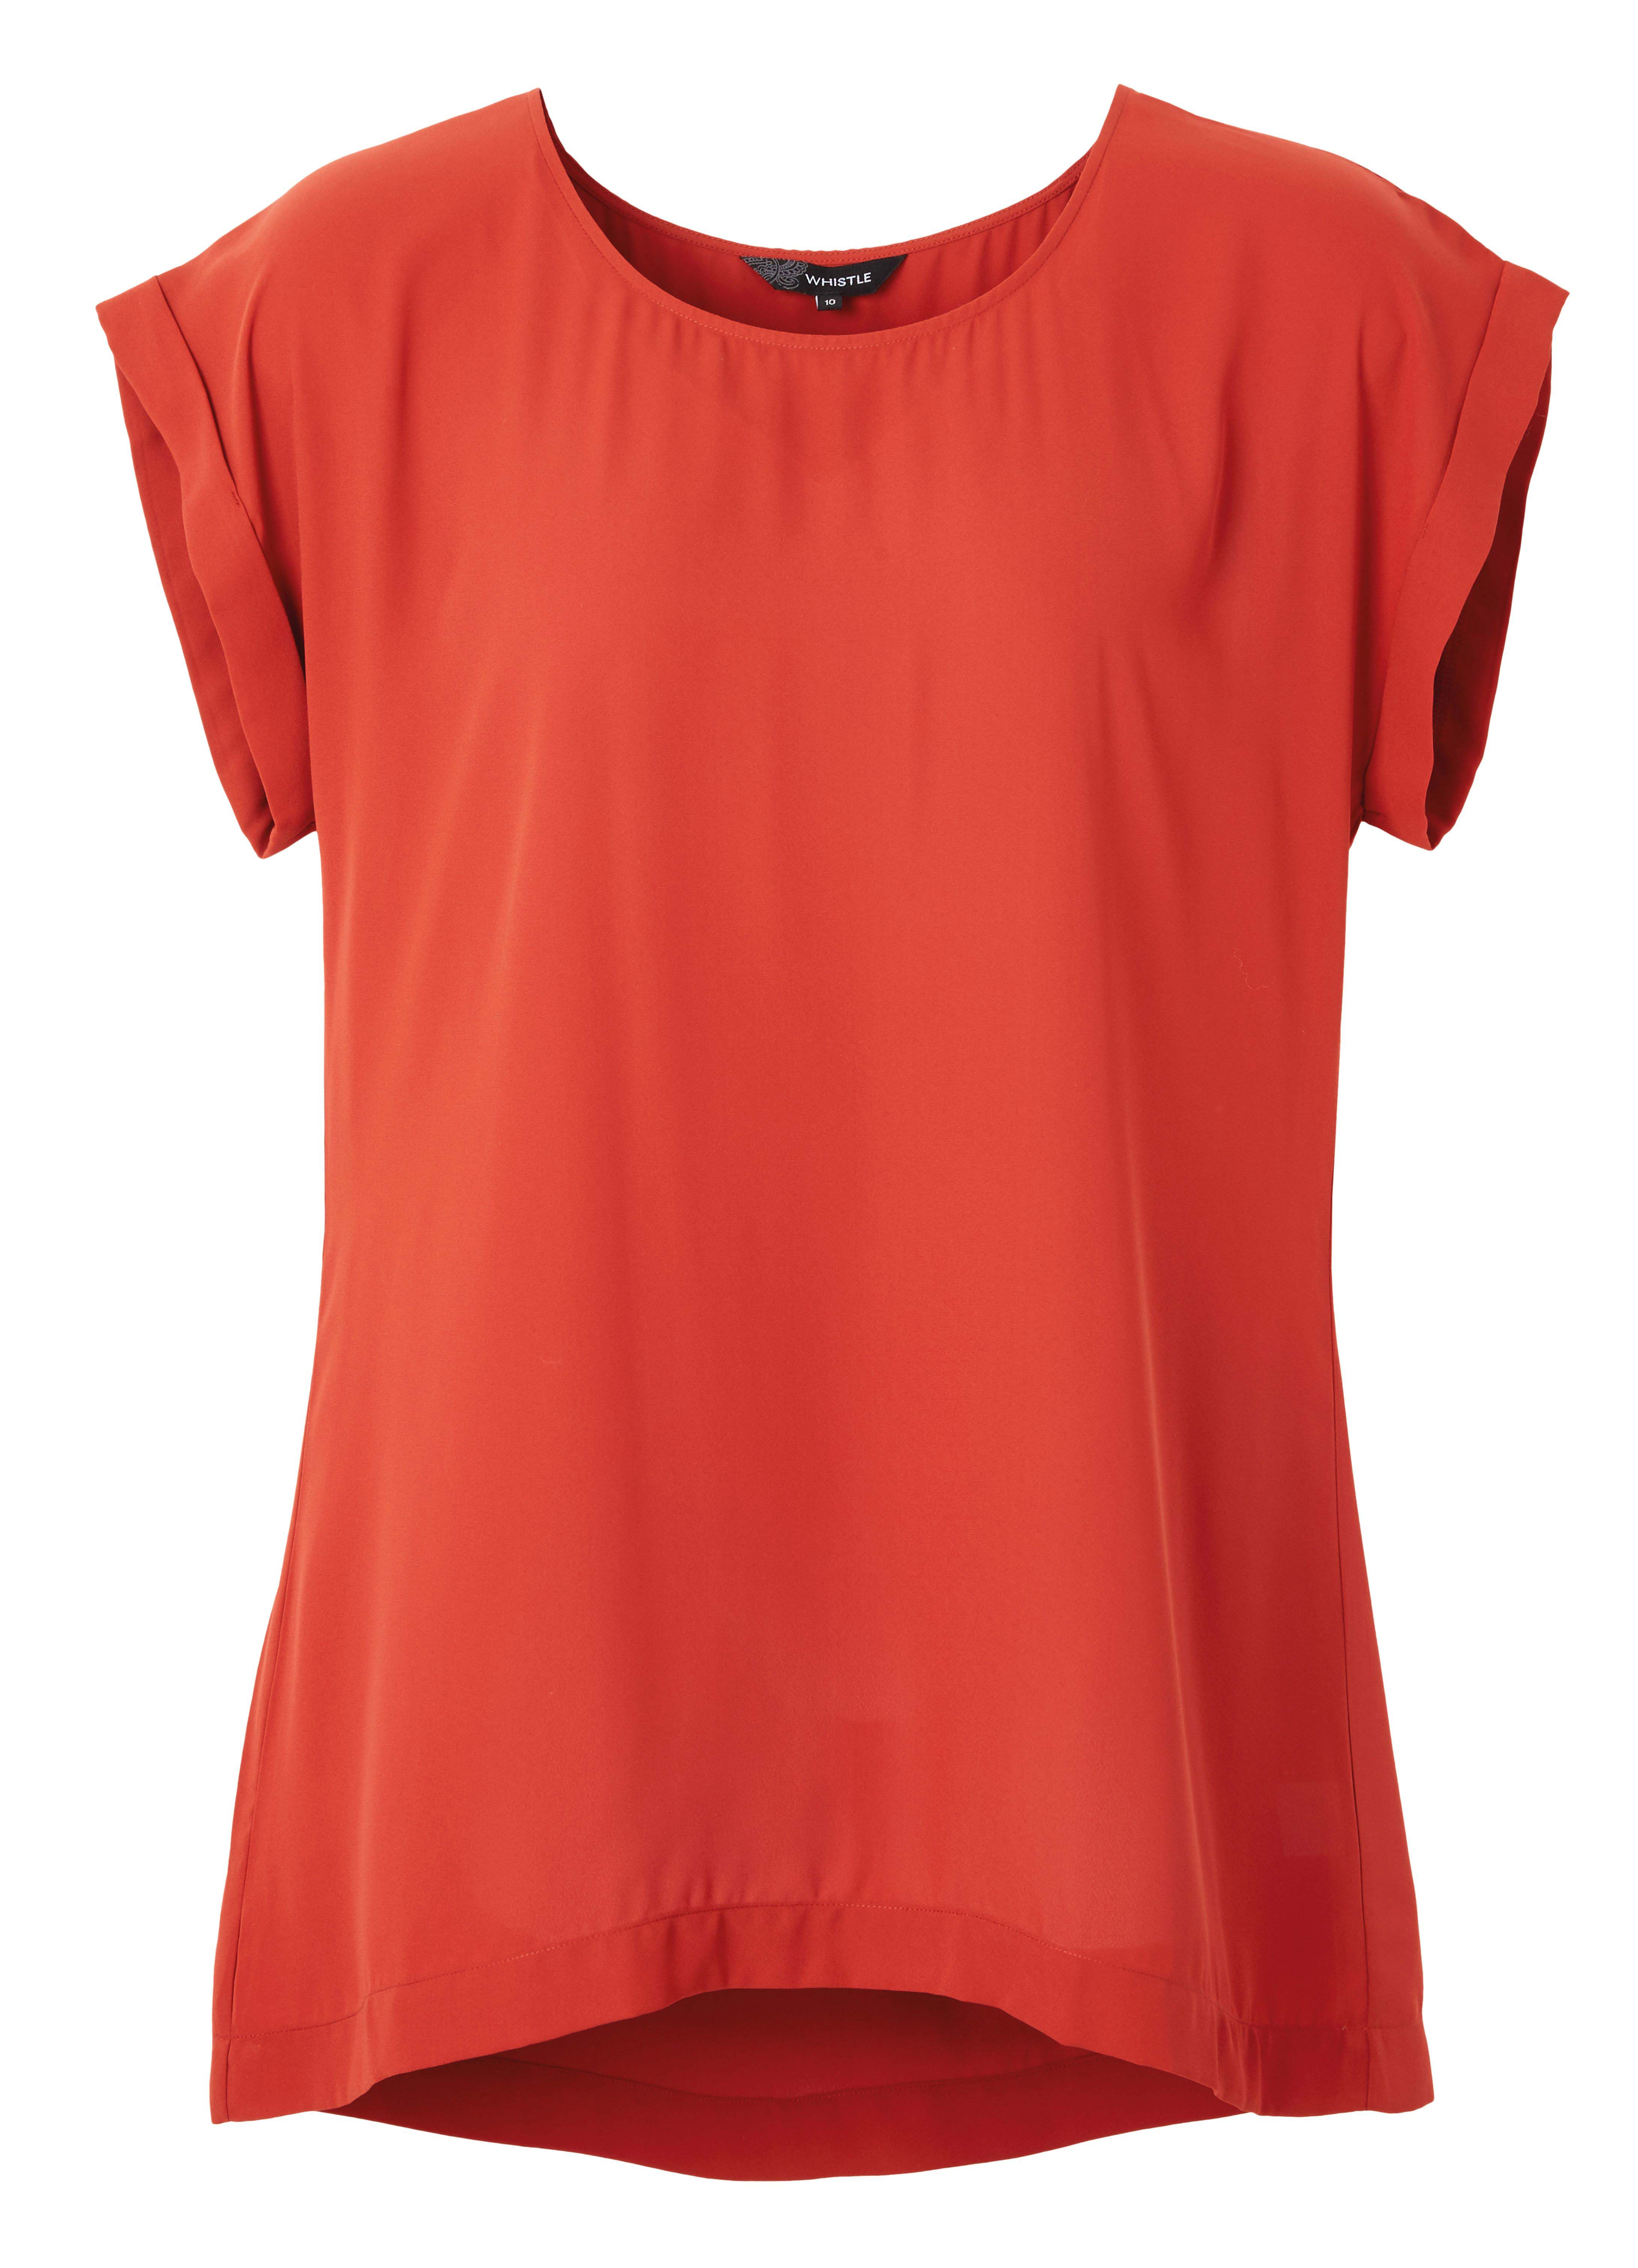 6078493 Whistle Essential Long Top Masala $49.99 Instore 11 Jan 2016